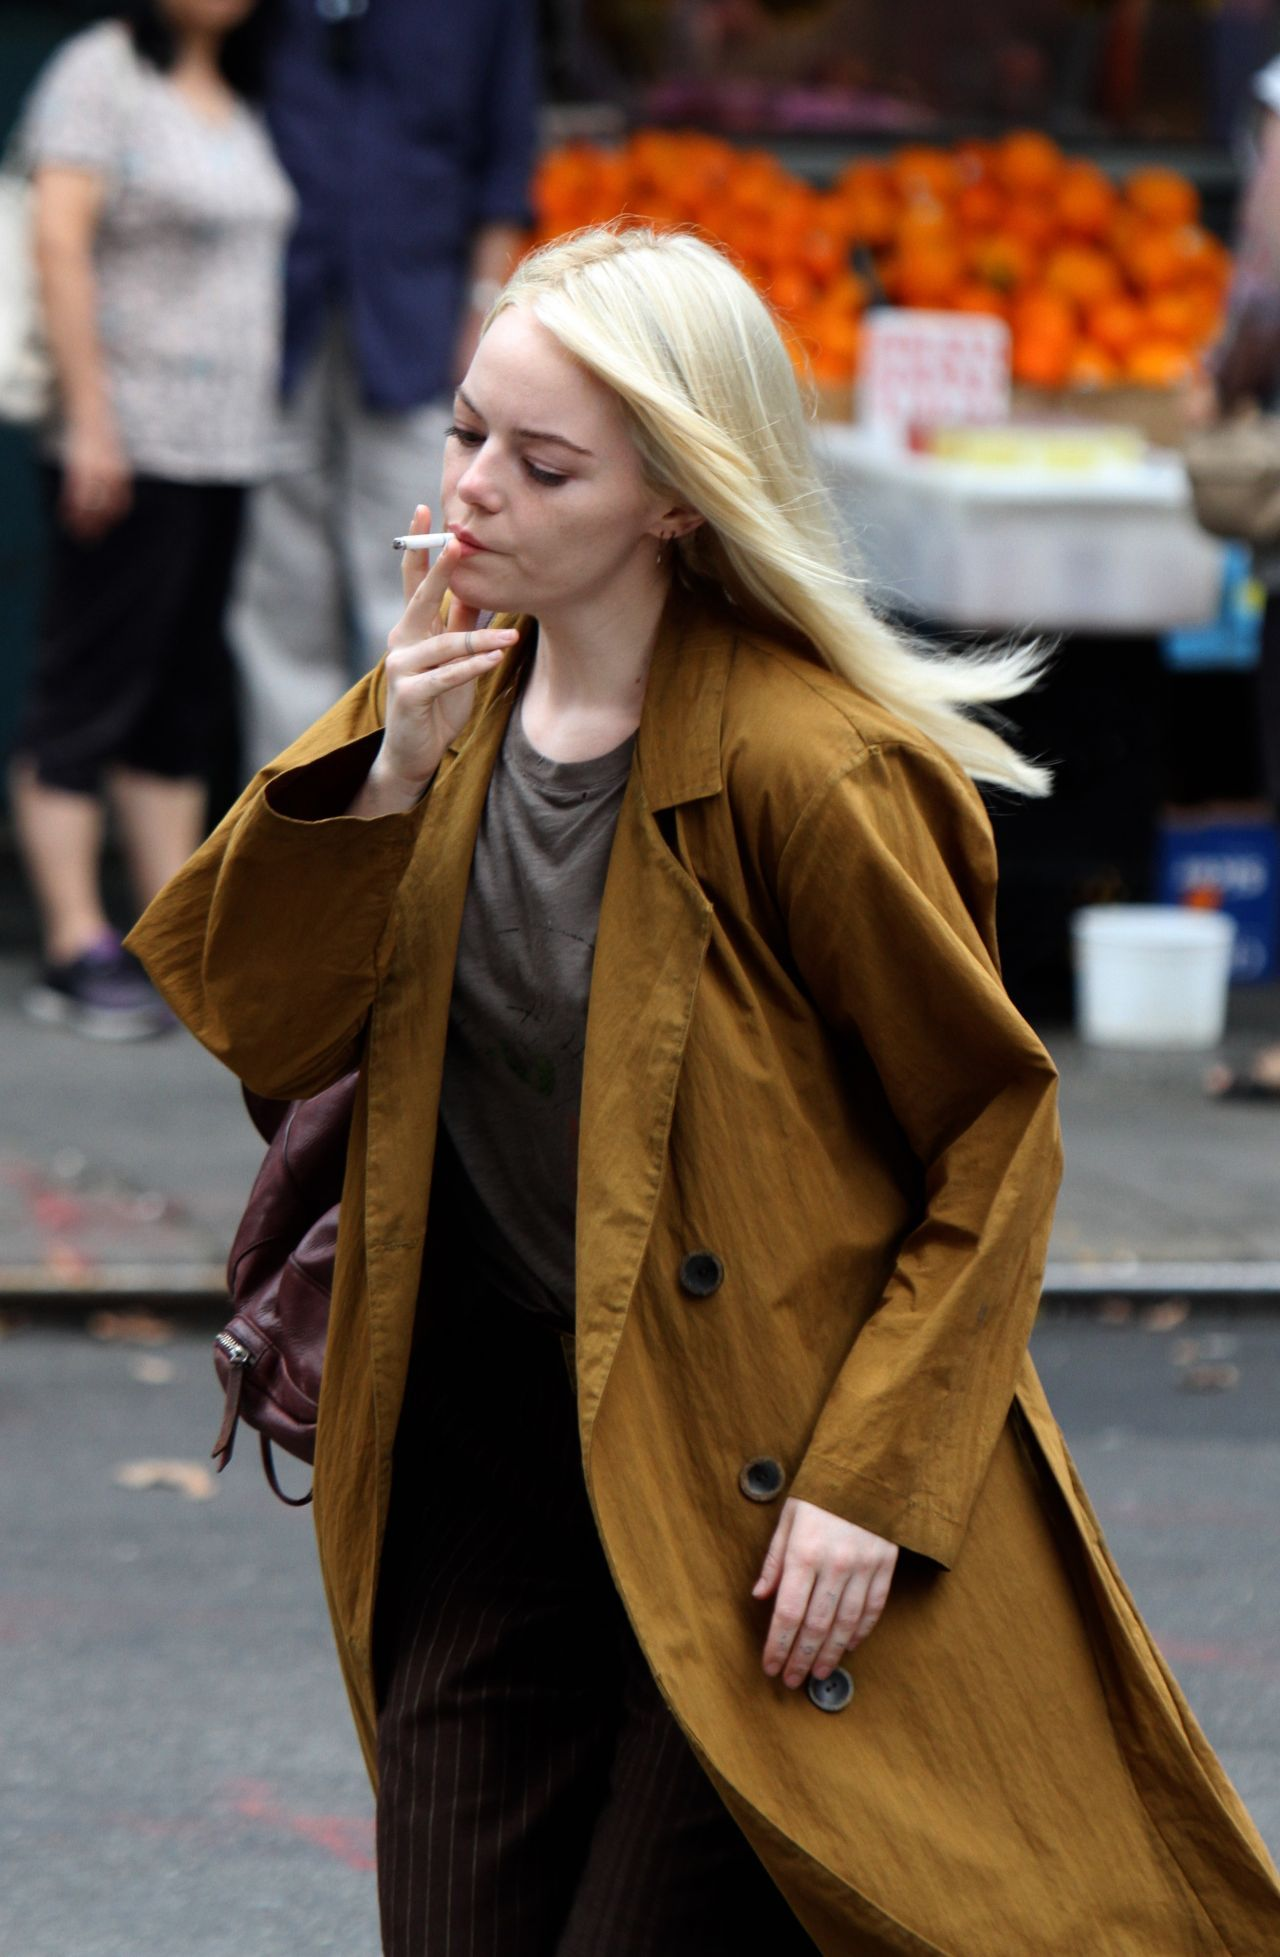 Emma stone shooting scenes on the set of maniac in long island nyc - 2019 year